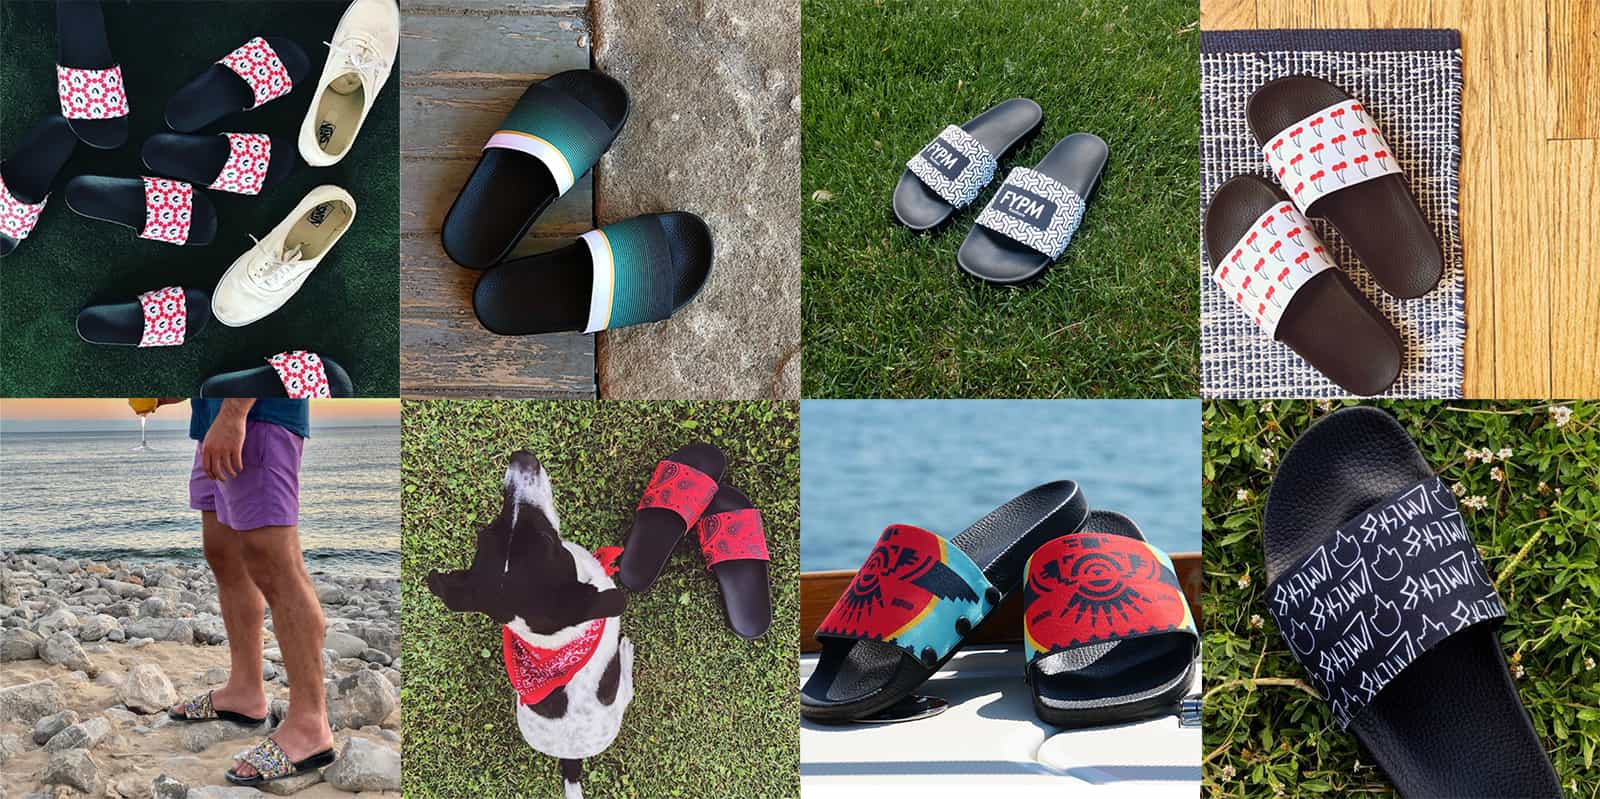 Why Choose Deco for Your Custom Slides